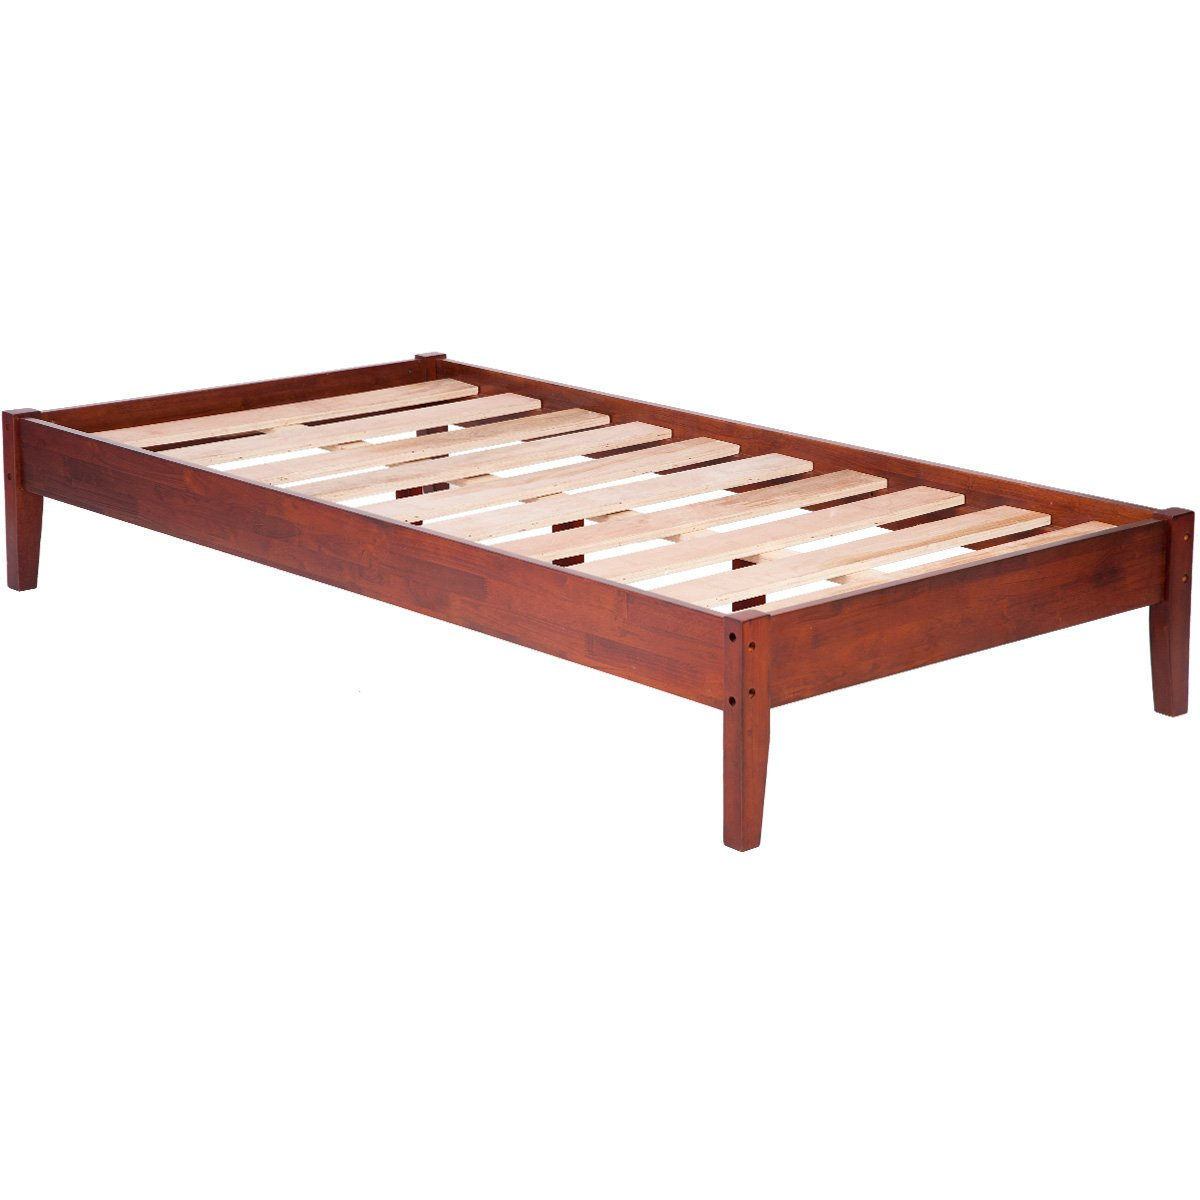 Merax Wood Platform Bed Frame Mattress Foundation with Wooden Slat Supports (Twin, Cherry)